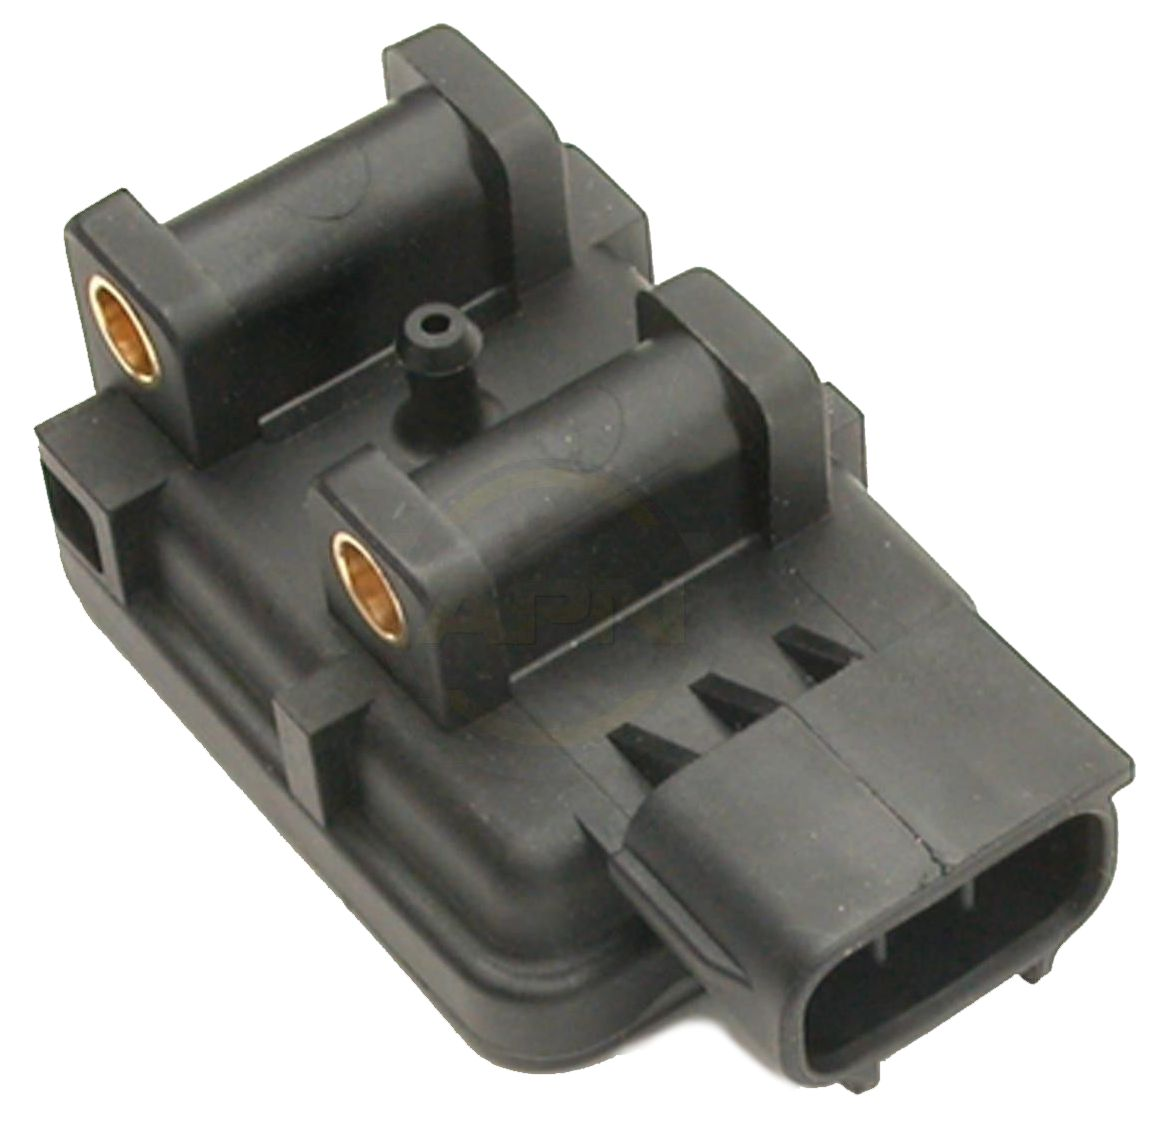 Sensor Map Dodge Ram Dakota Jeep Cherokee Wrangler 56029405